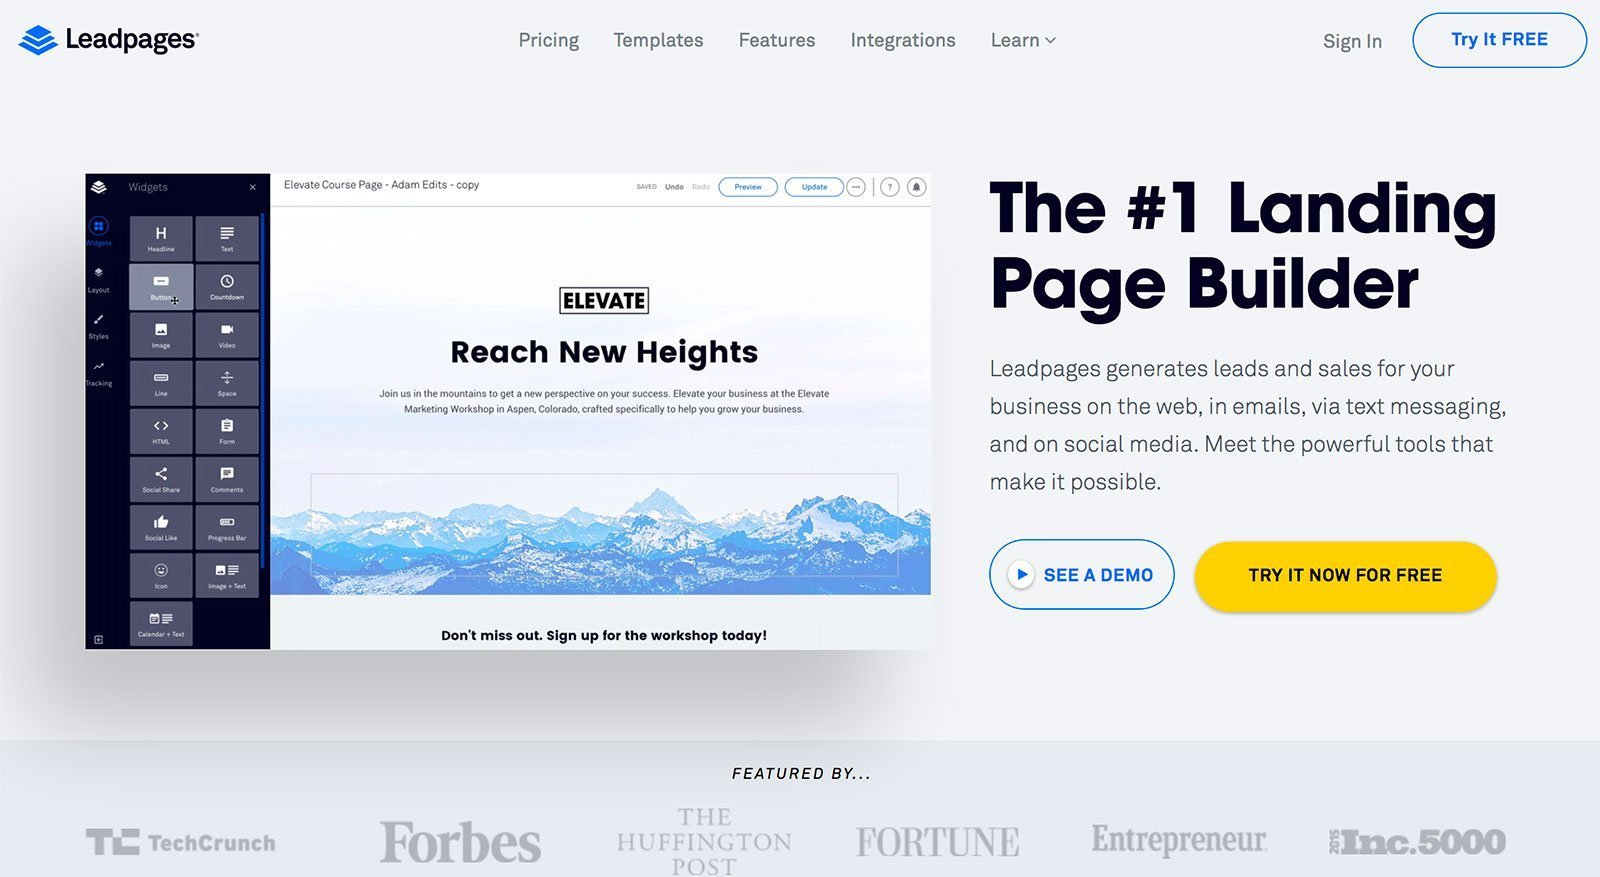 How Do Leadpages Work